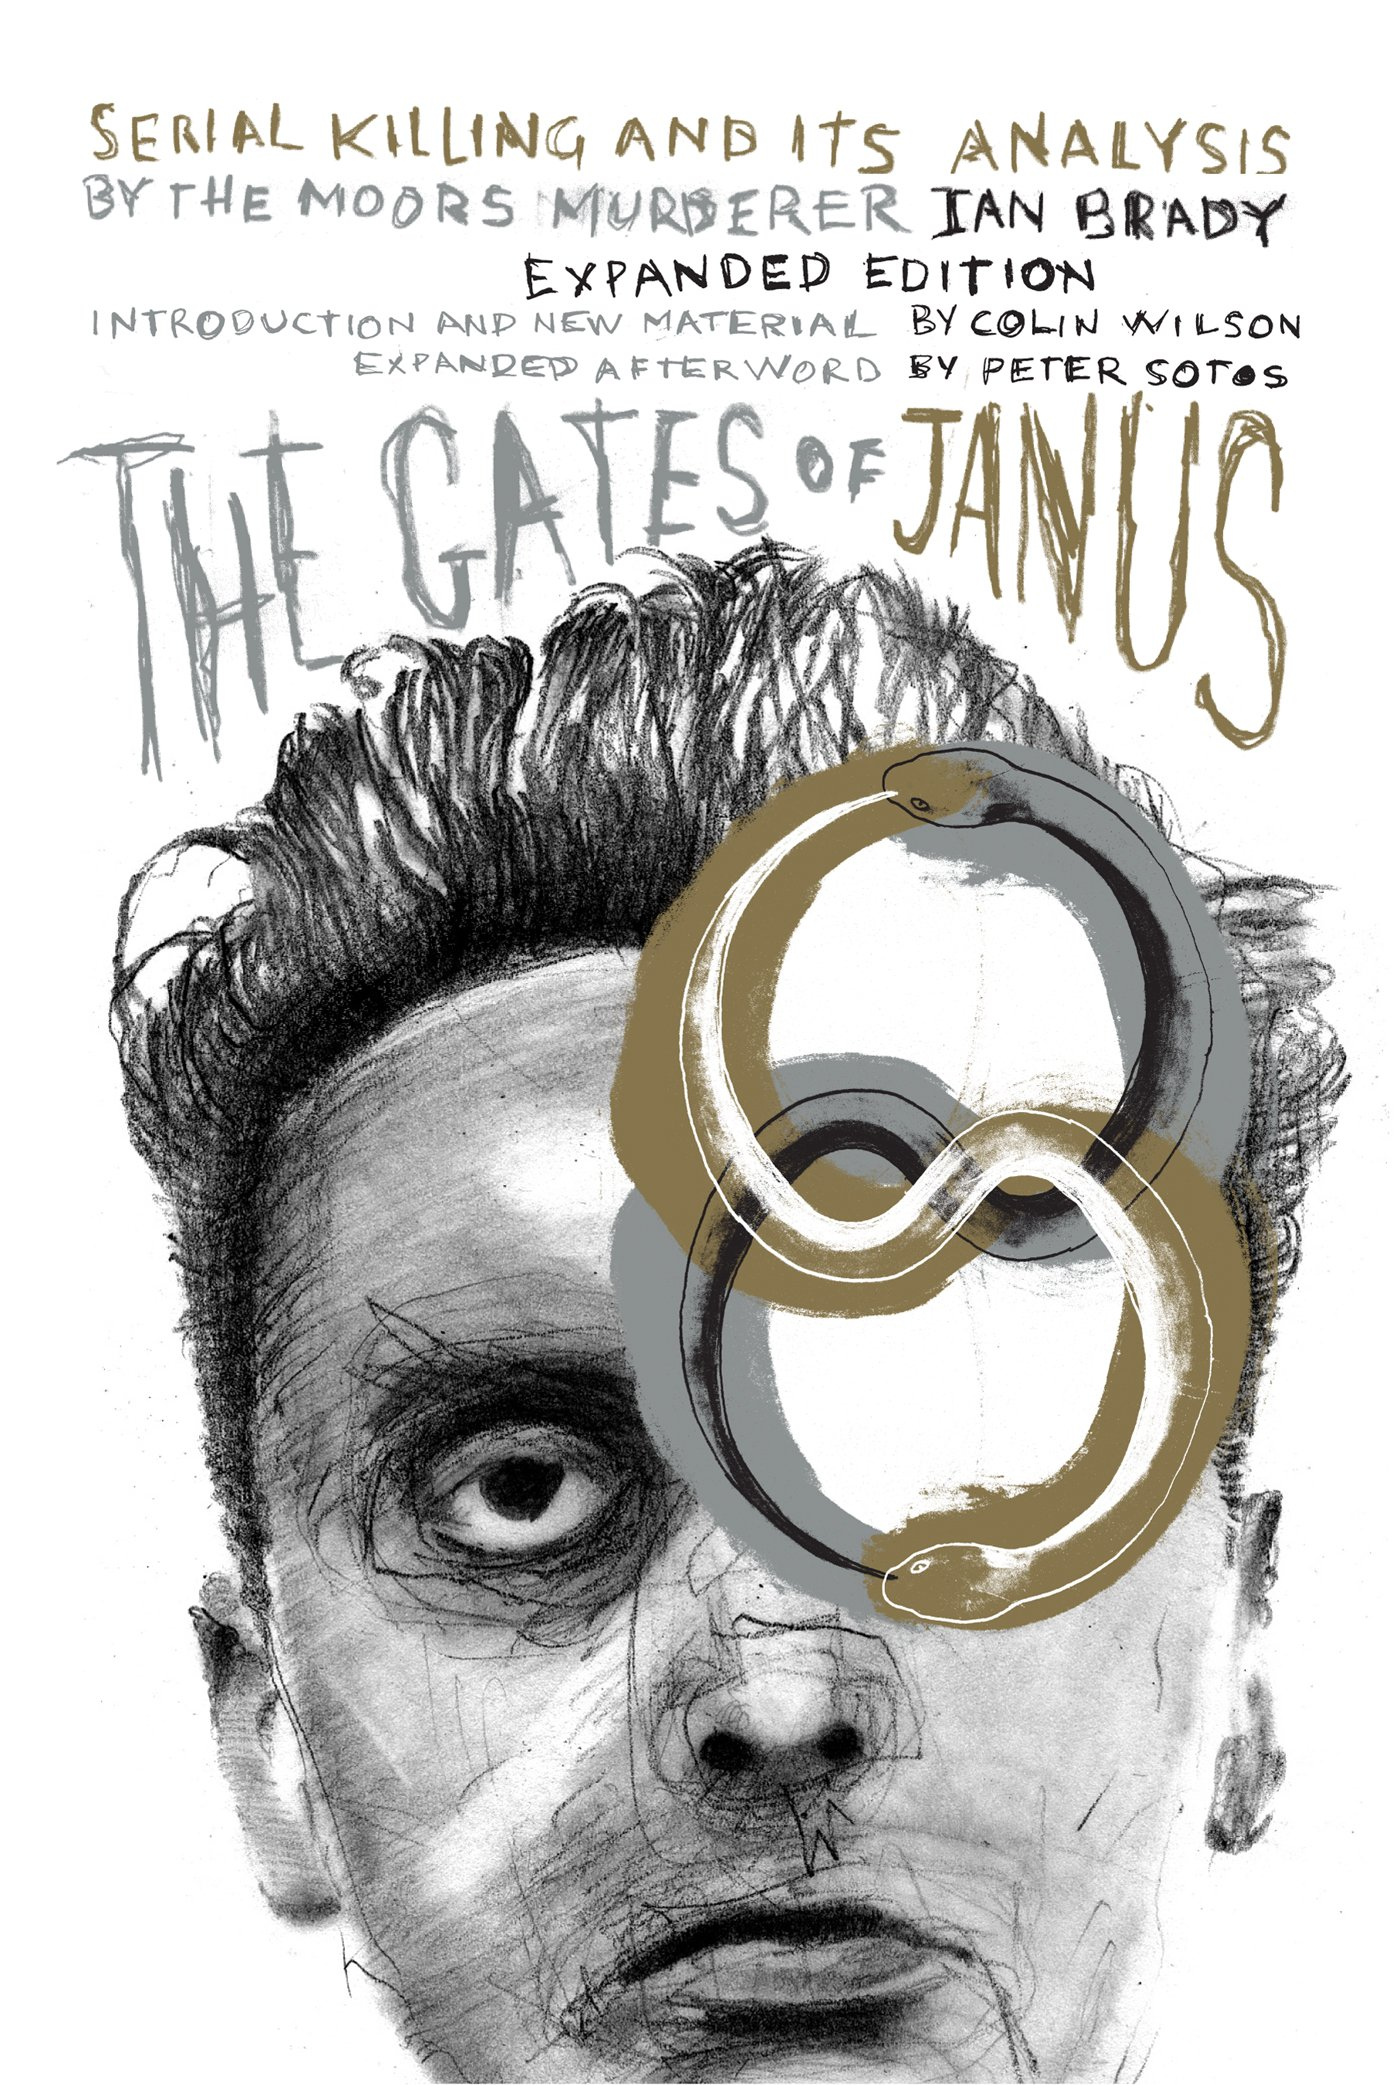 the-gates-of-janus-serial-killing-and-its-analysis-by-the-moors-murderer-ian-brady